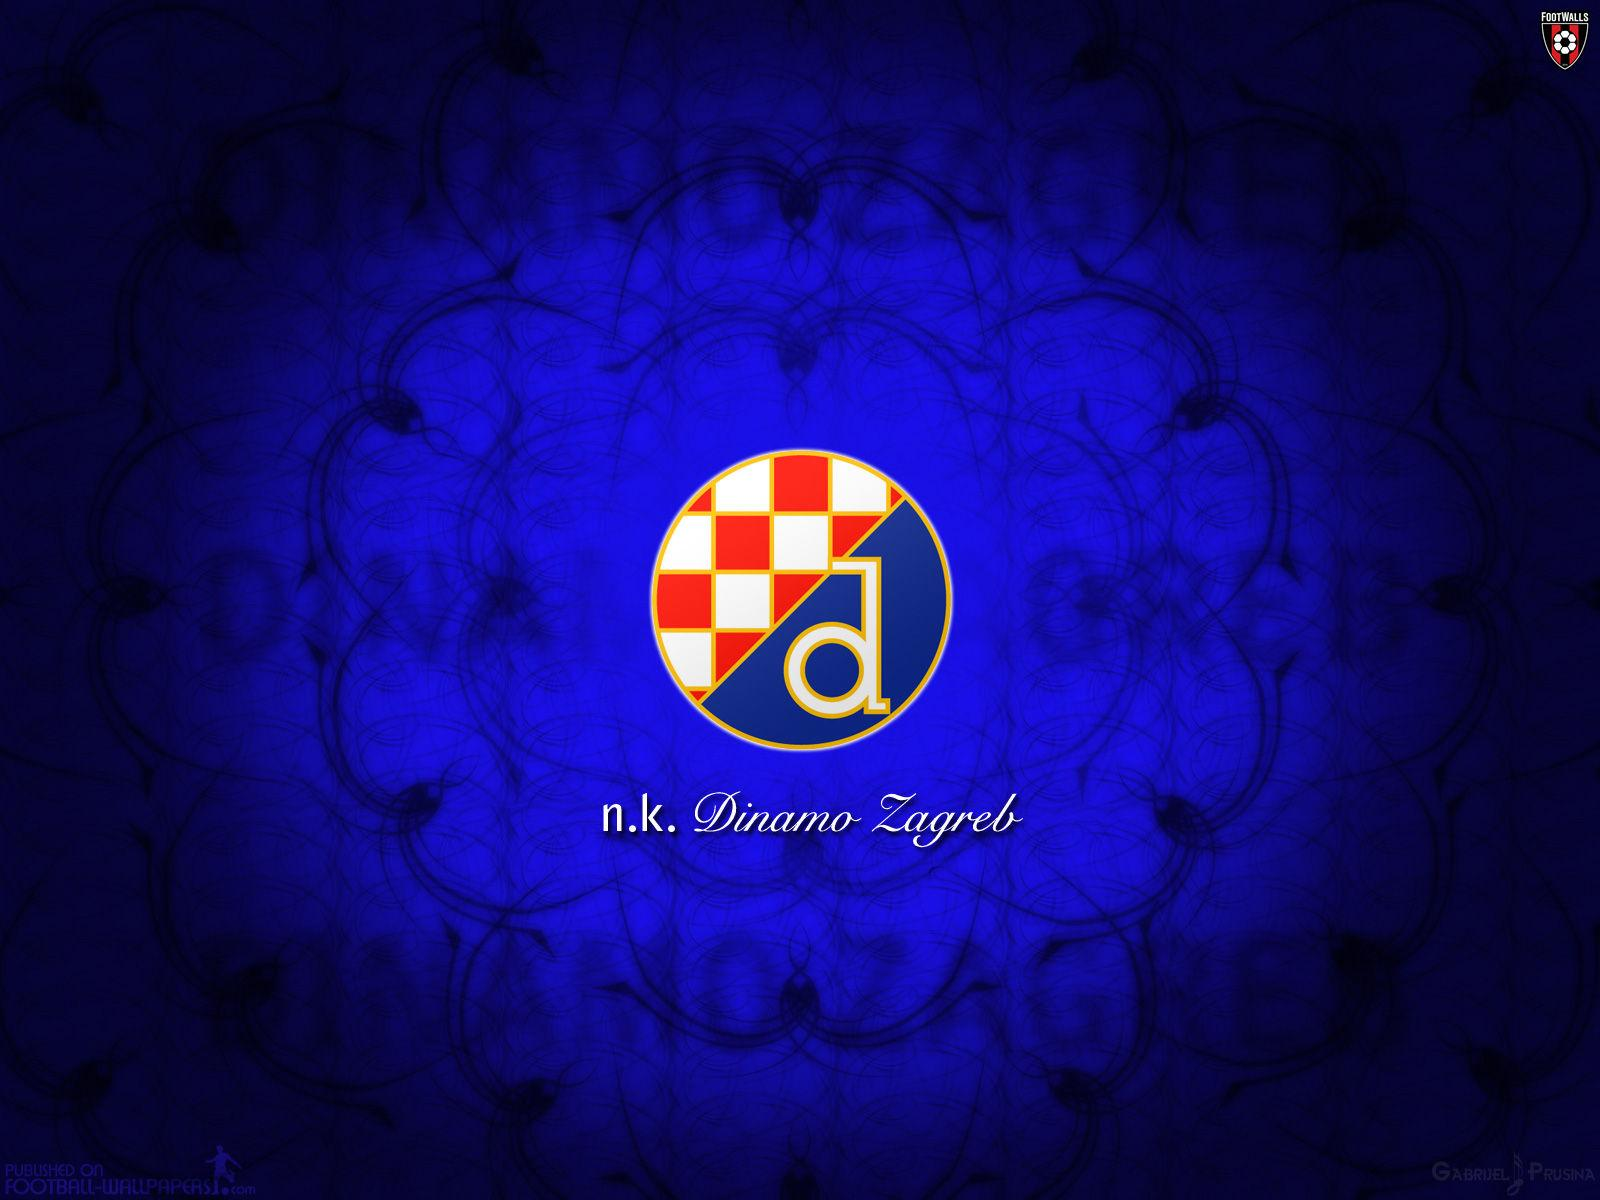 Gnk Dinamo Zagreb Wallpapers Wallpaper Cave